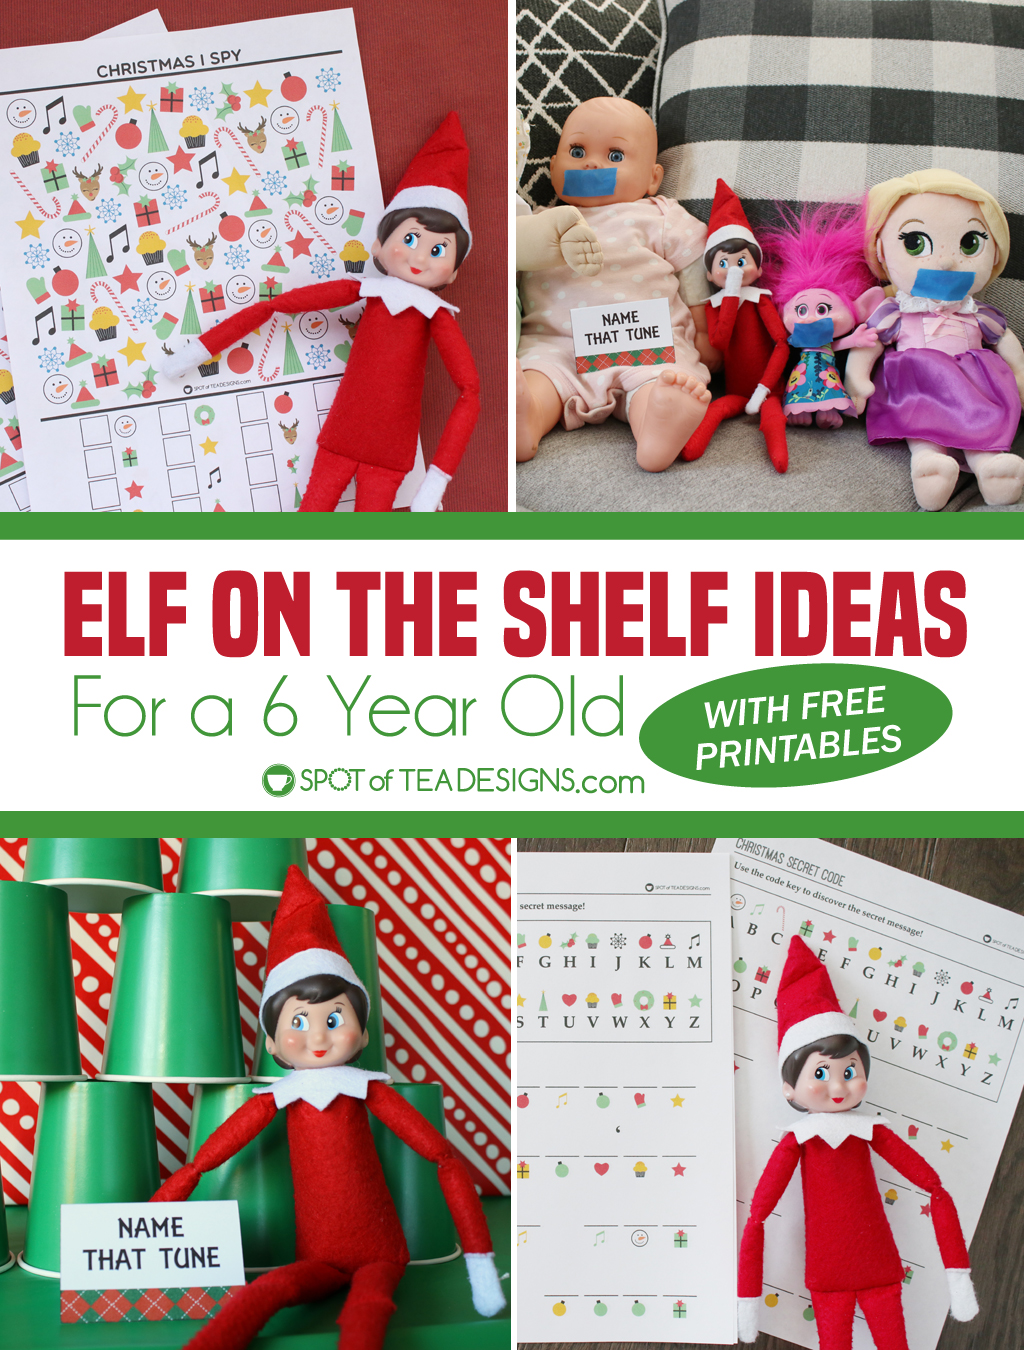 Elf on the shelf ideas for a 6 year old printable schedule | spotofteadesigns.com